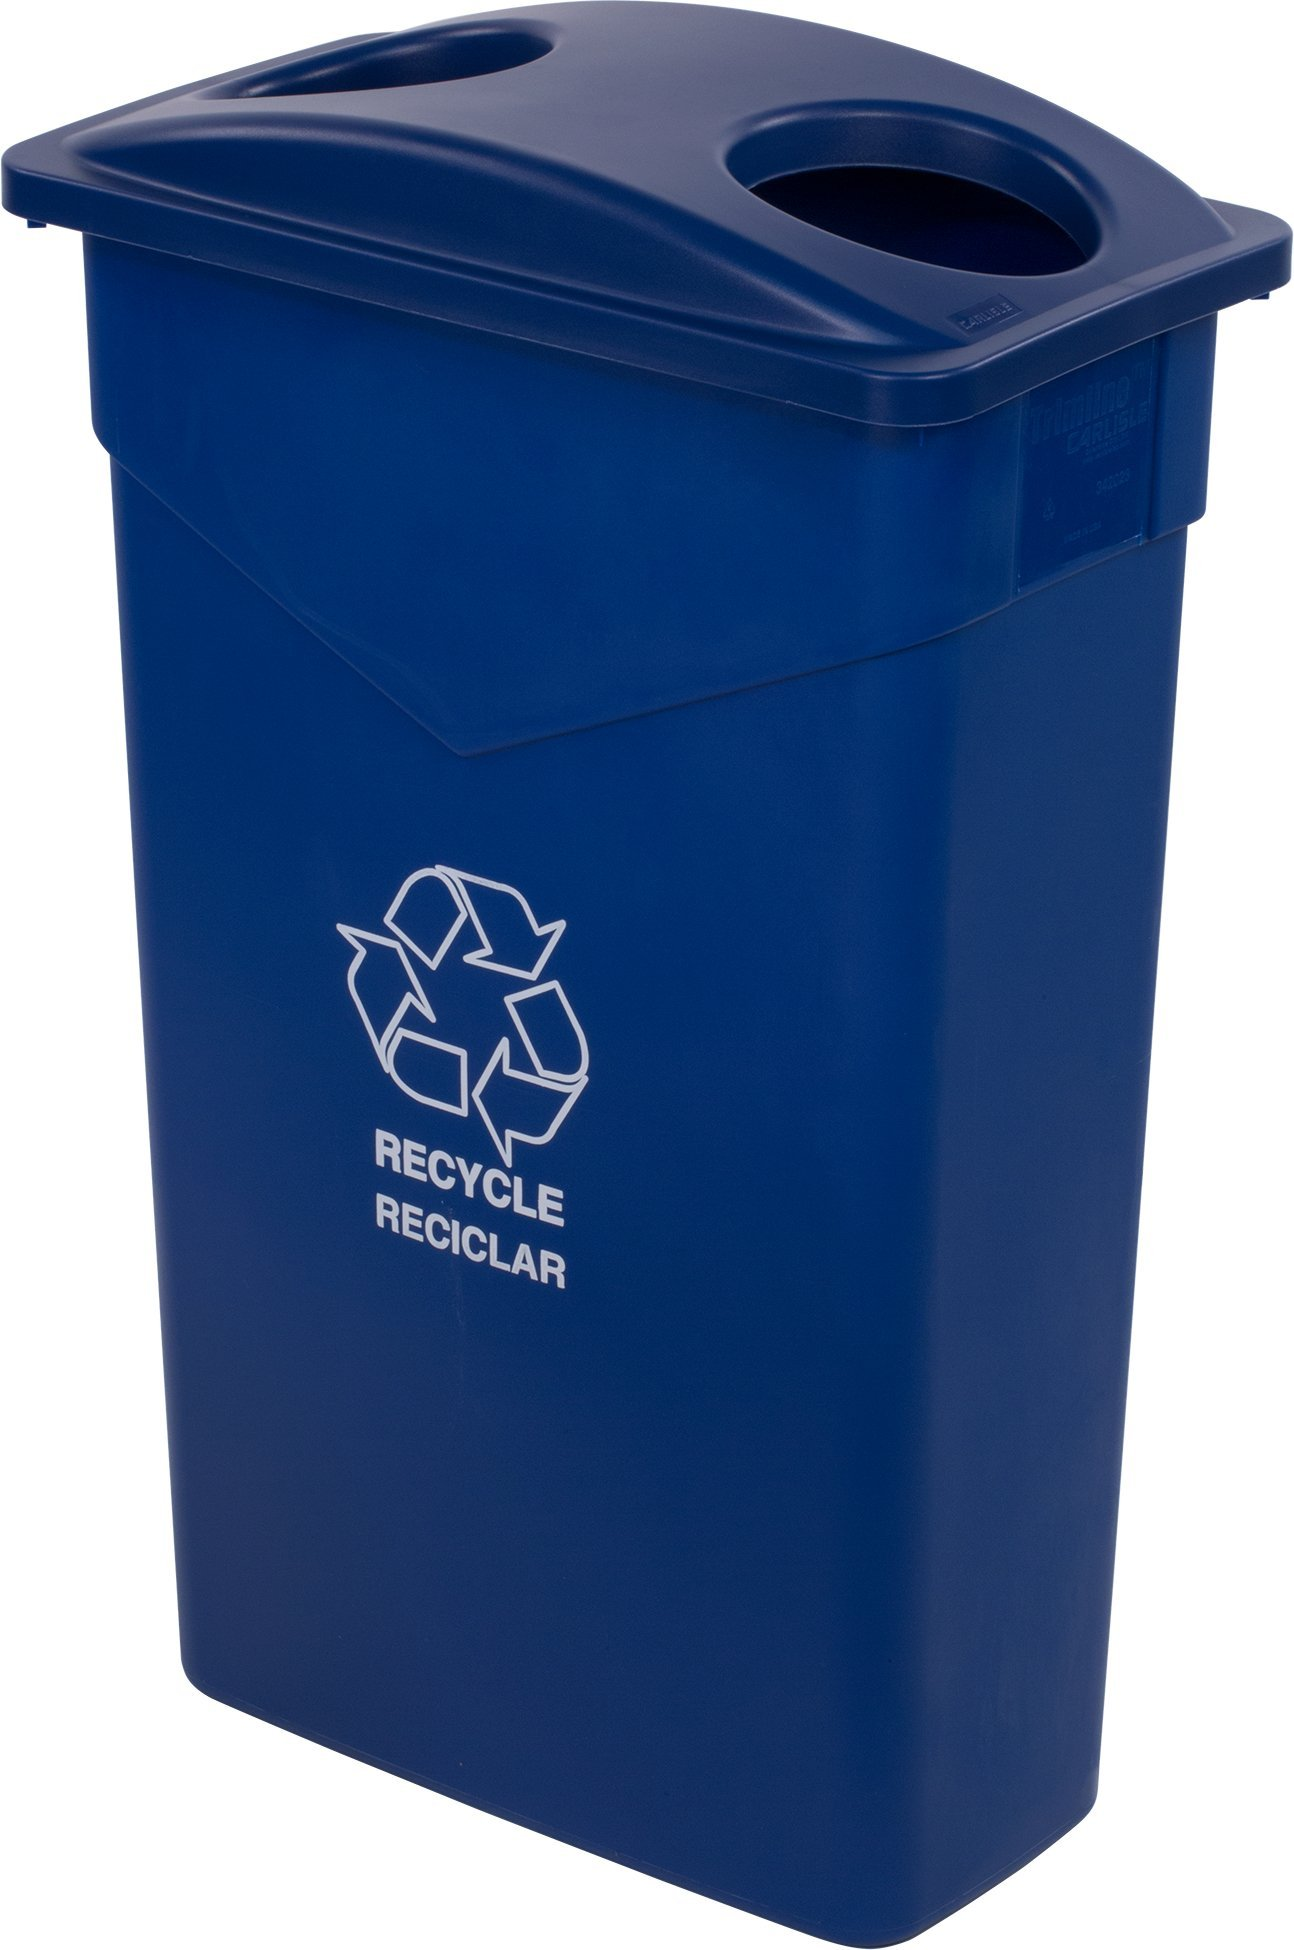 Carlisle 342023REC14 TrimLine LLDPE Recycle Can, 23 Gallon Capacity, 20'' Length x 11'' Width x 29.88'' Height, Blue by Carlisle (Image #5)